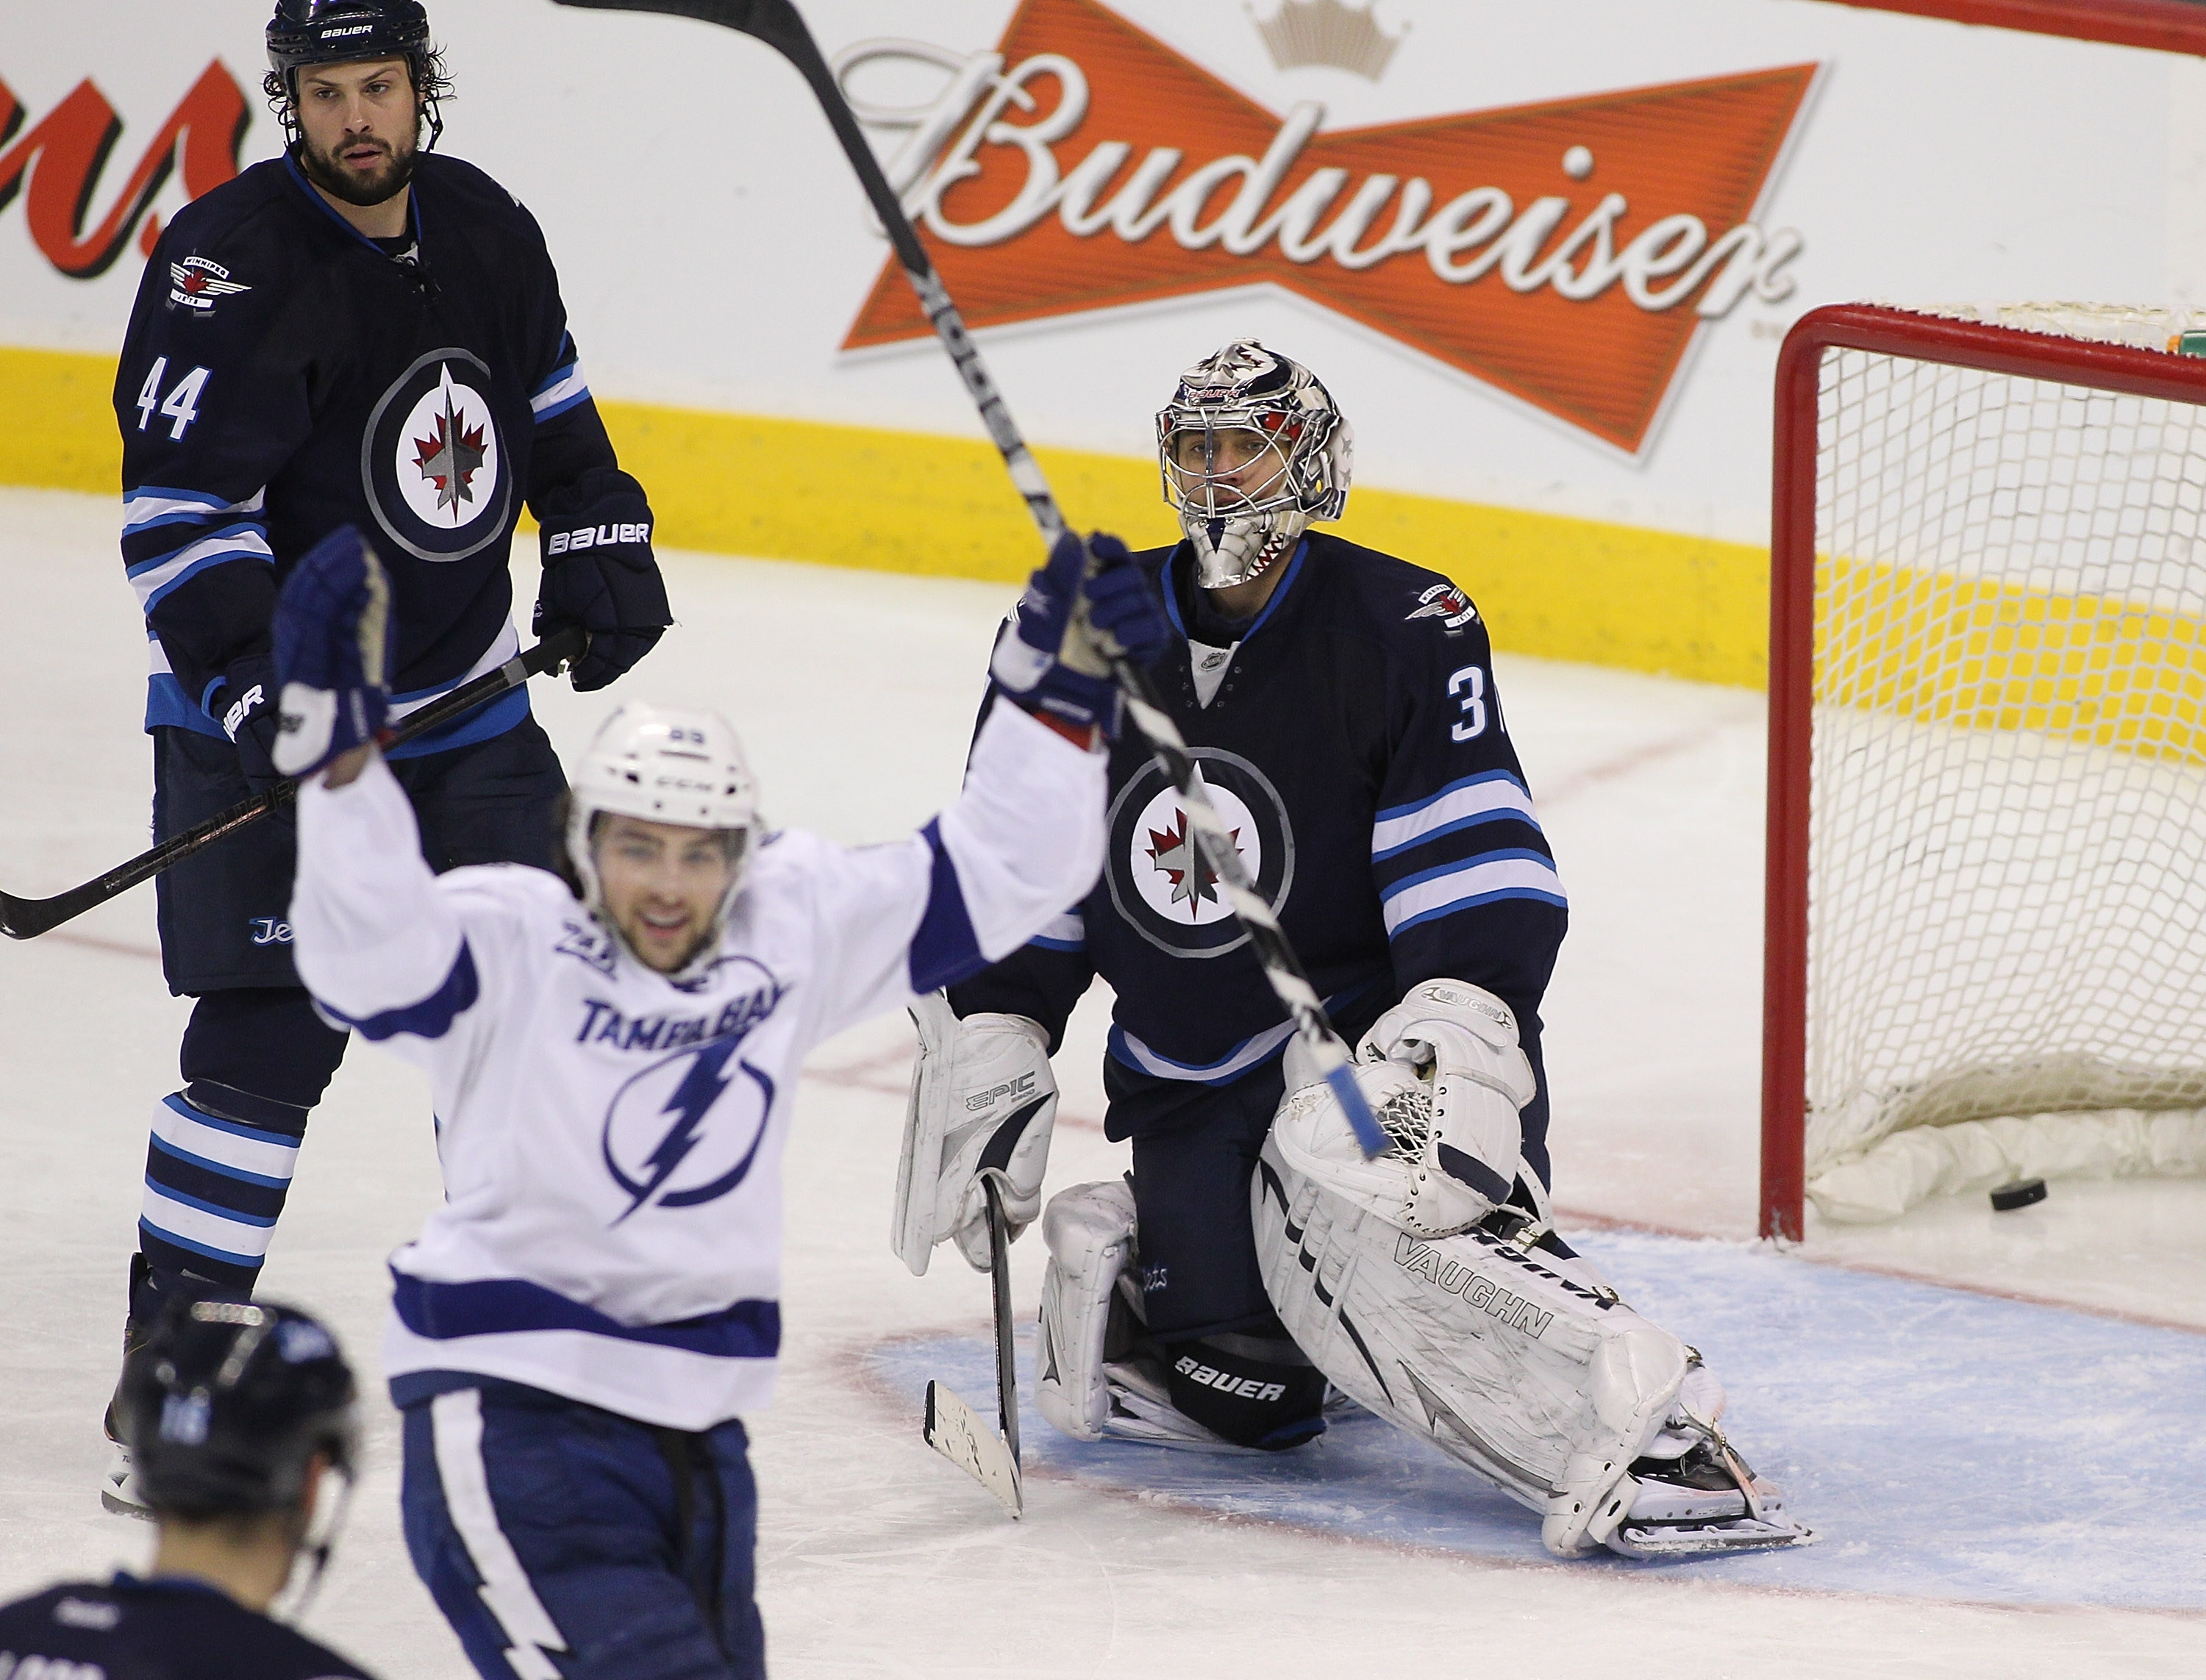 Zach Bogosian and goalie Ondrej Pavelec of the Jets were victimized by Cory Conacher on March 24, the last time Conacher would score for the Lightning.